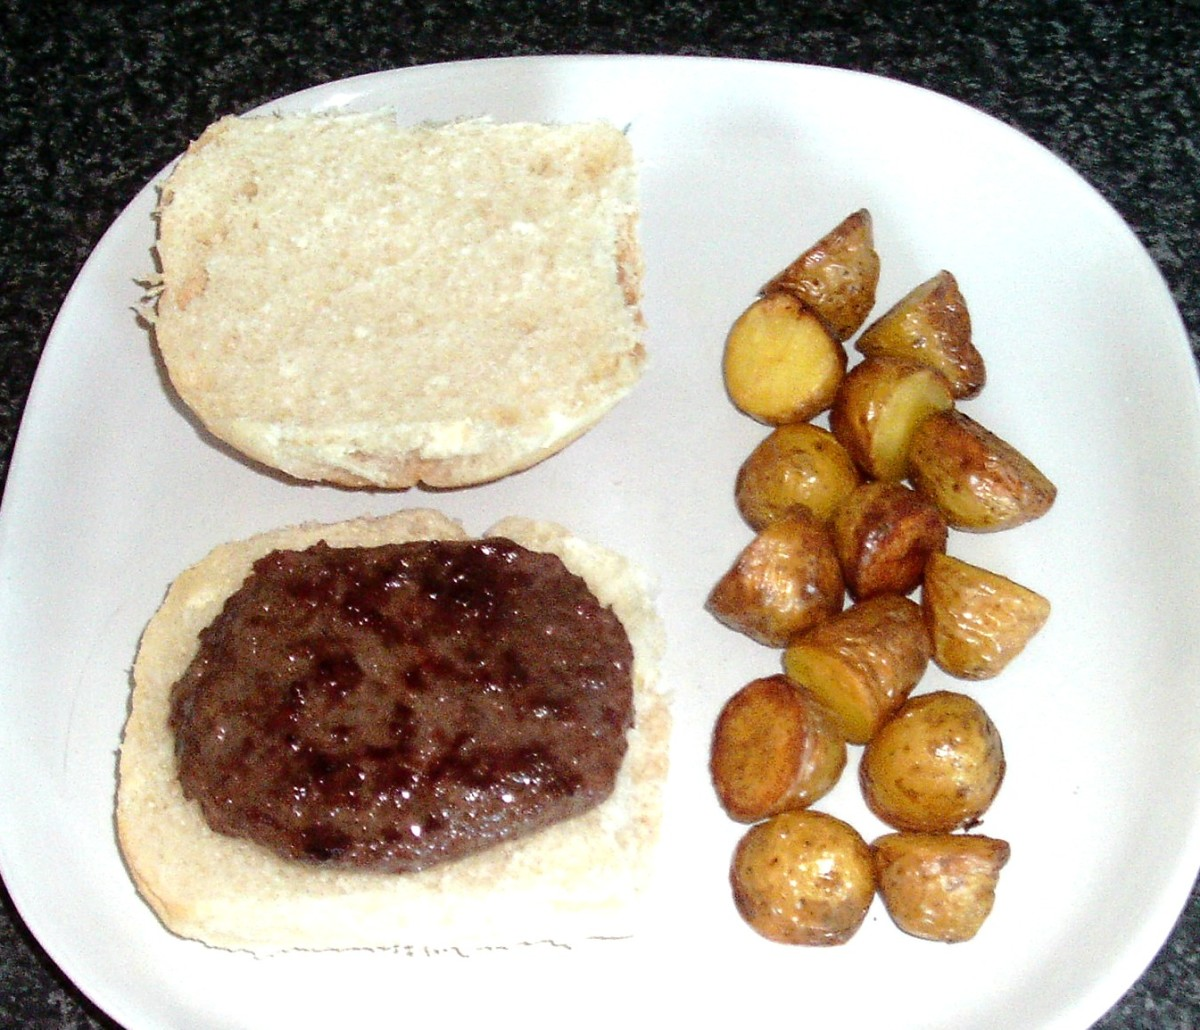 Burger and roast potatoes are plated